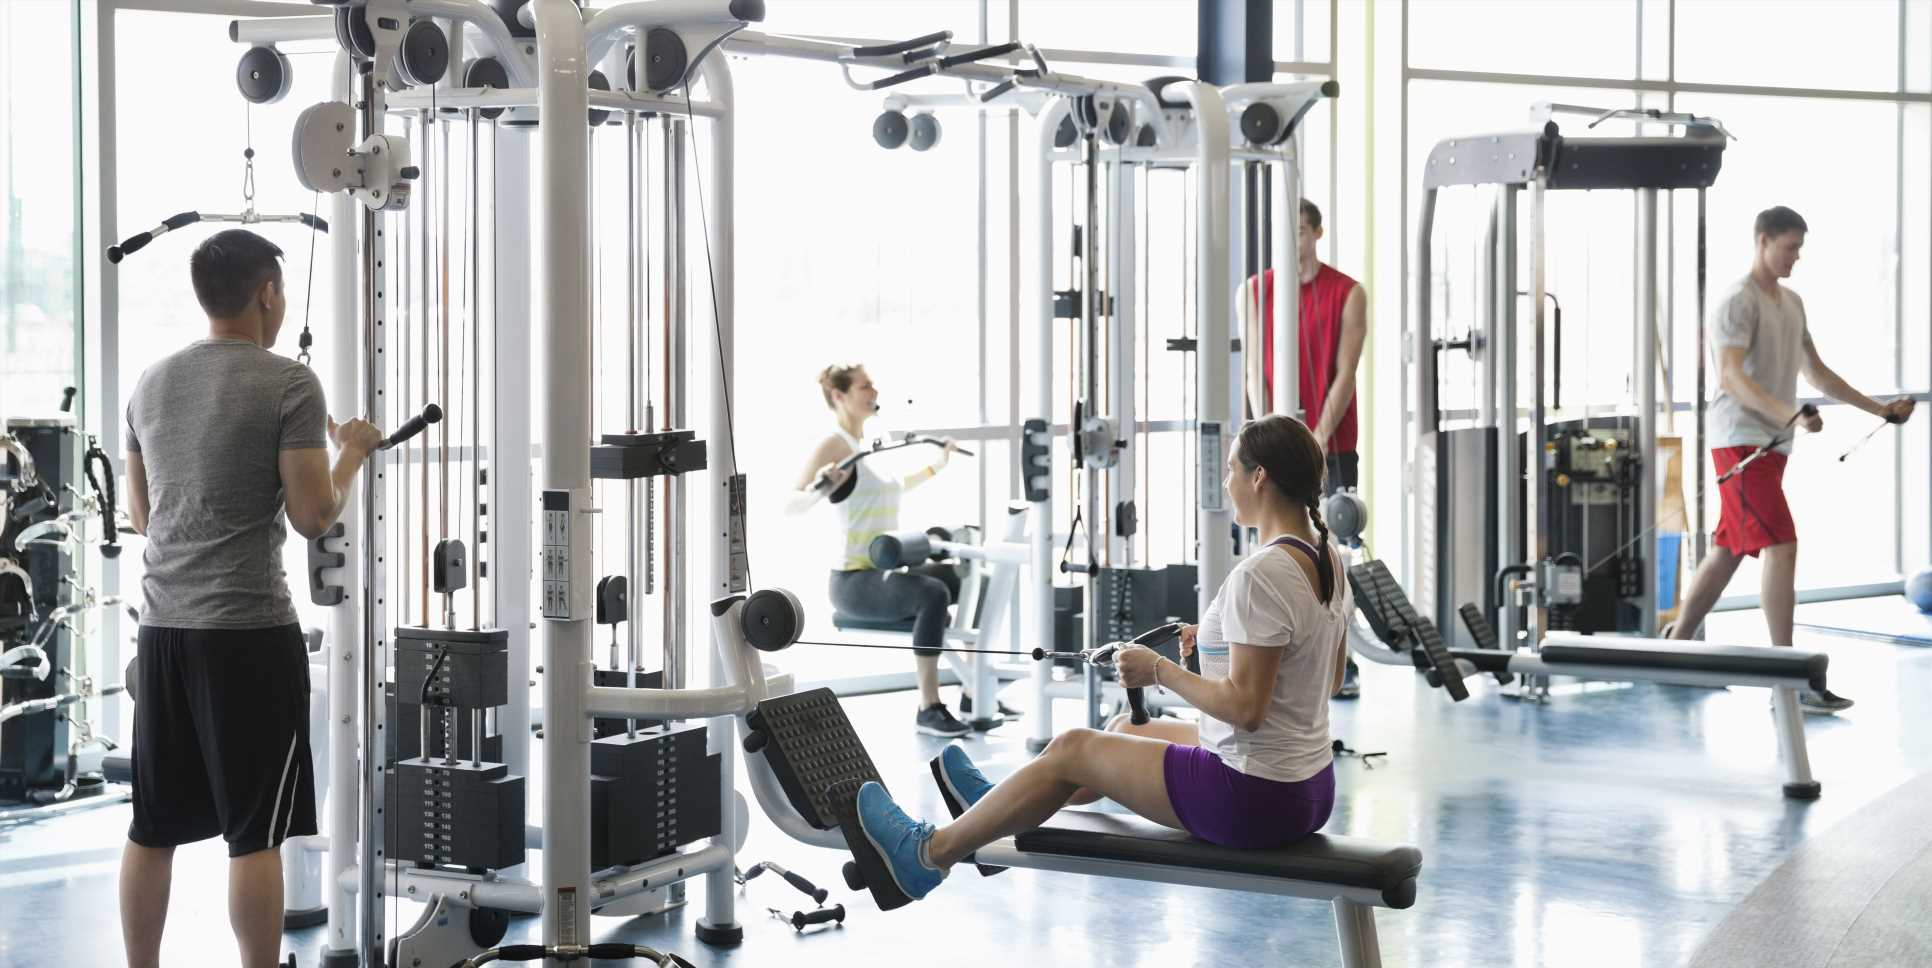 The 10 Best Gyms to Join Now